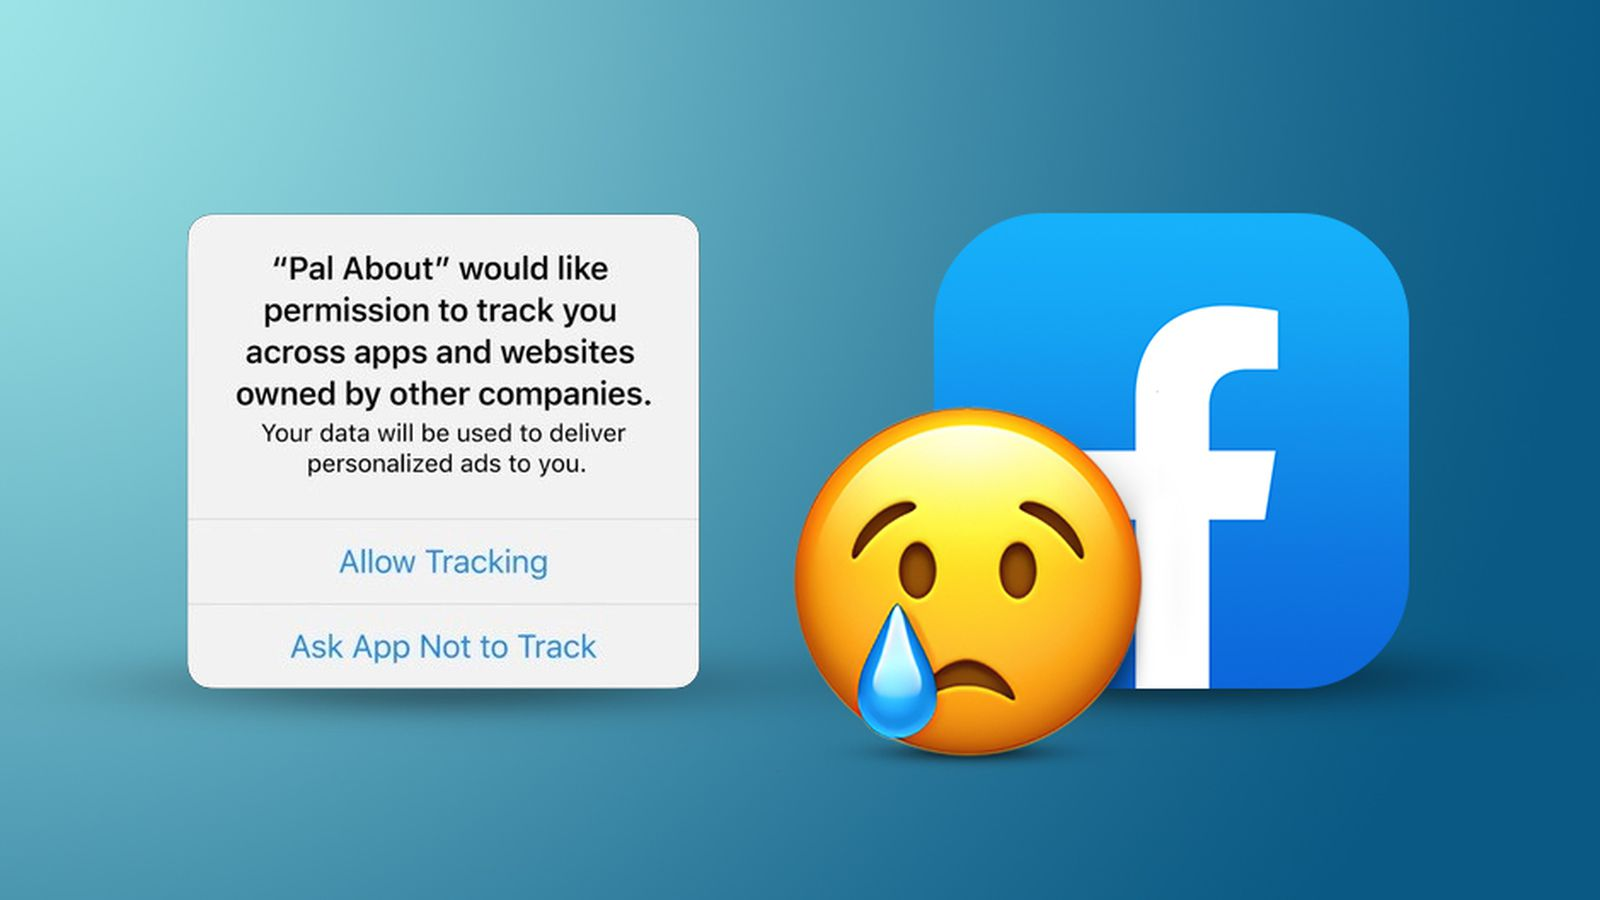 Apple Confirms Commitment to App Tracking Transparency in Letter Condemning Facebook's Data Collection [Updated]